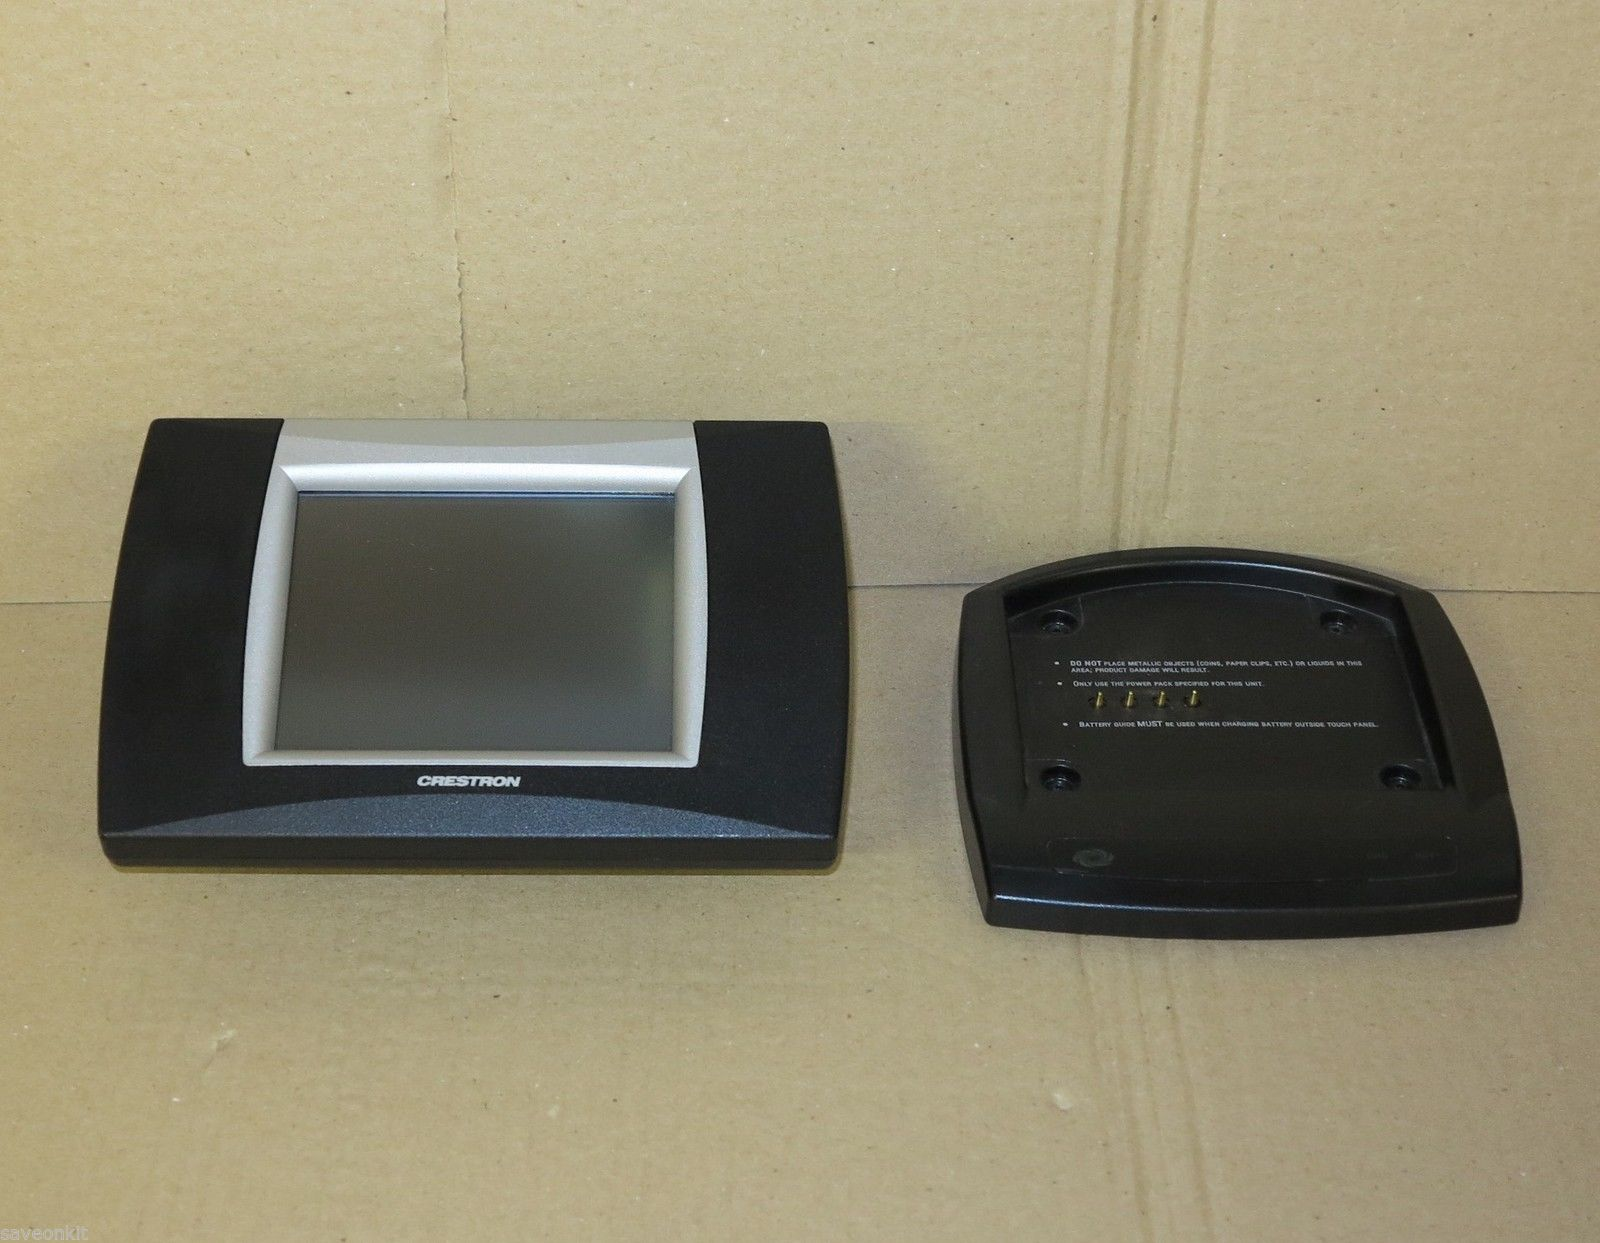 Crestron - ST-1700C - Crestron ST-1700C Touch-Screen Multimedia